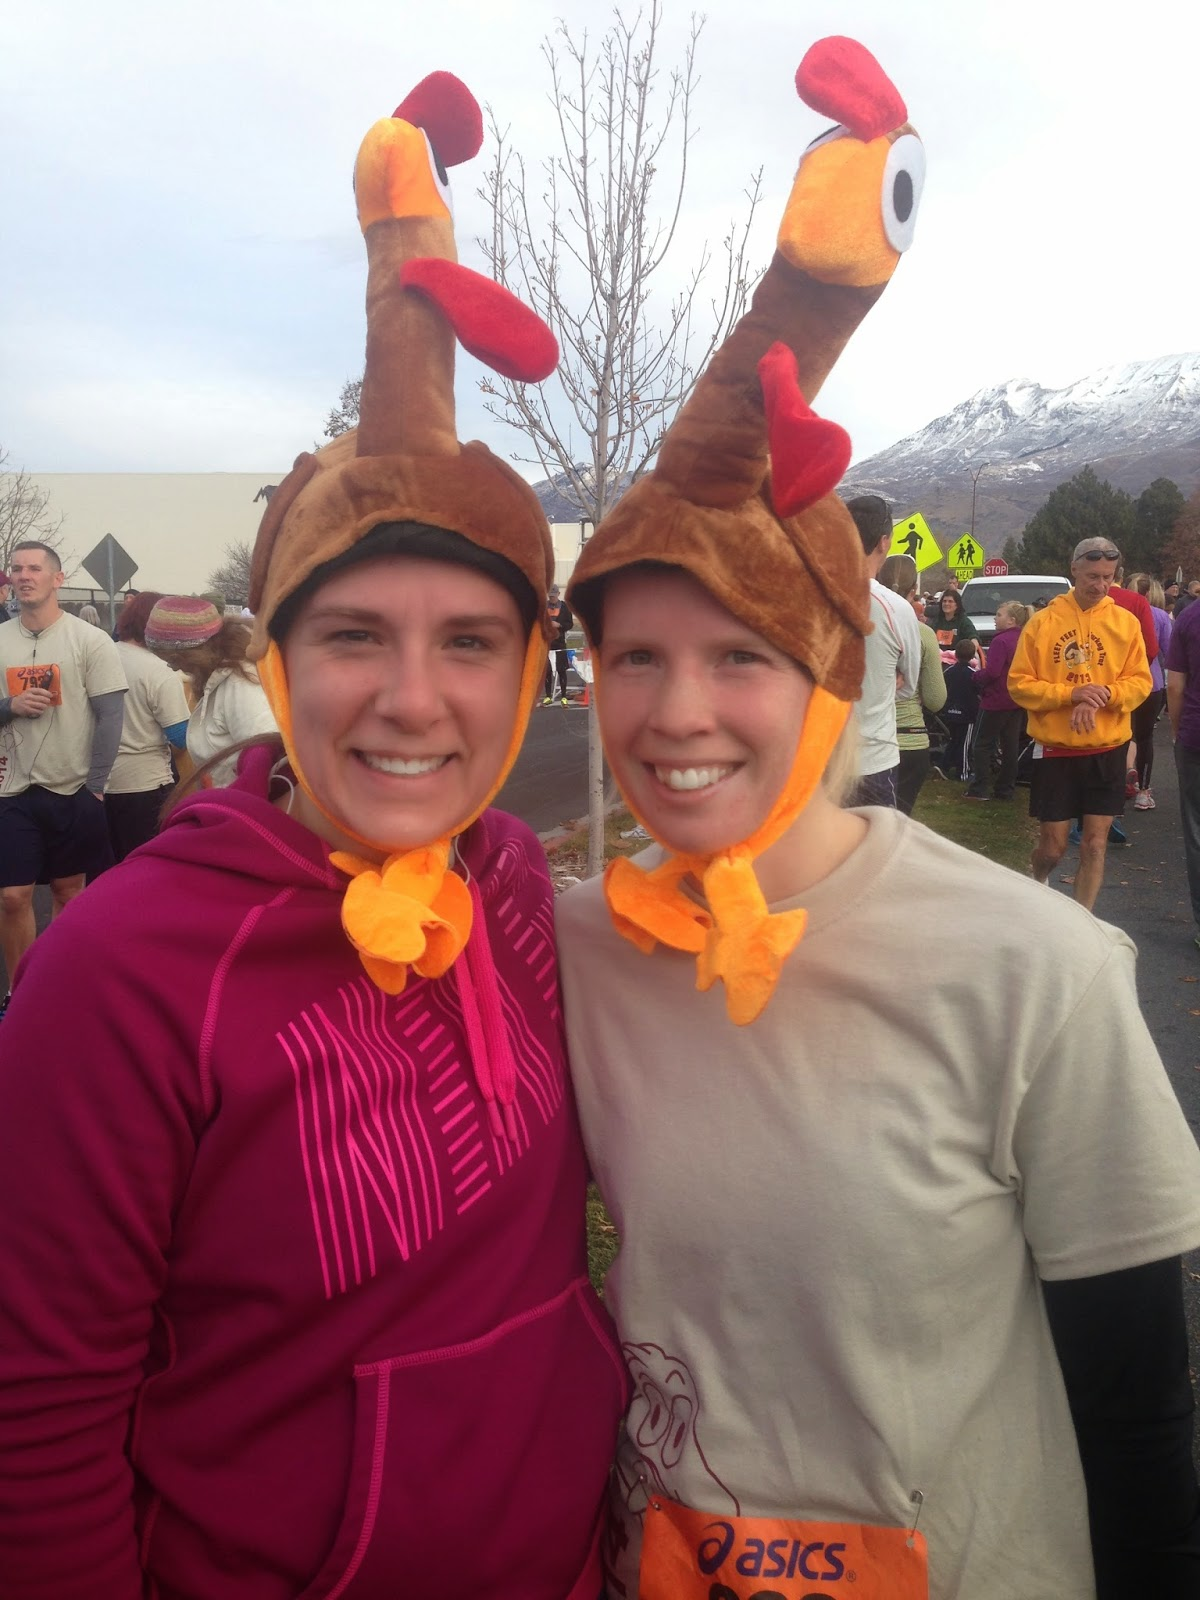 alli and I running the turkey trot on thanksgiving training for the dopey challenge